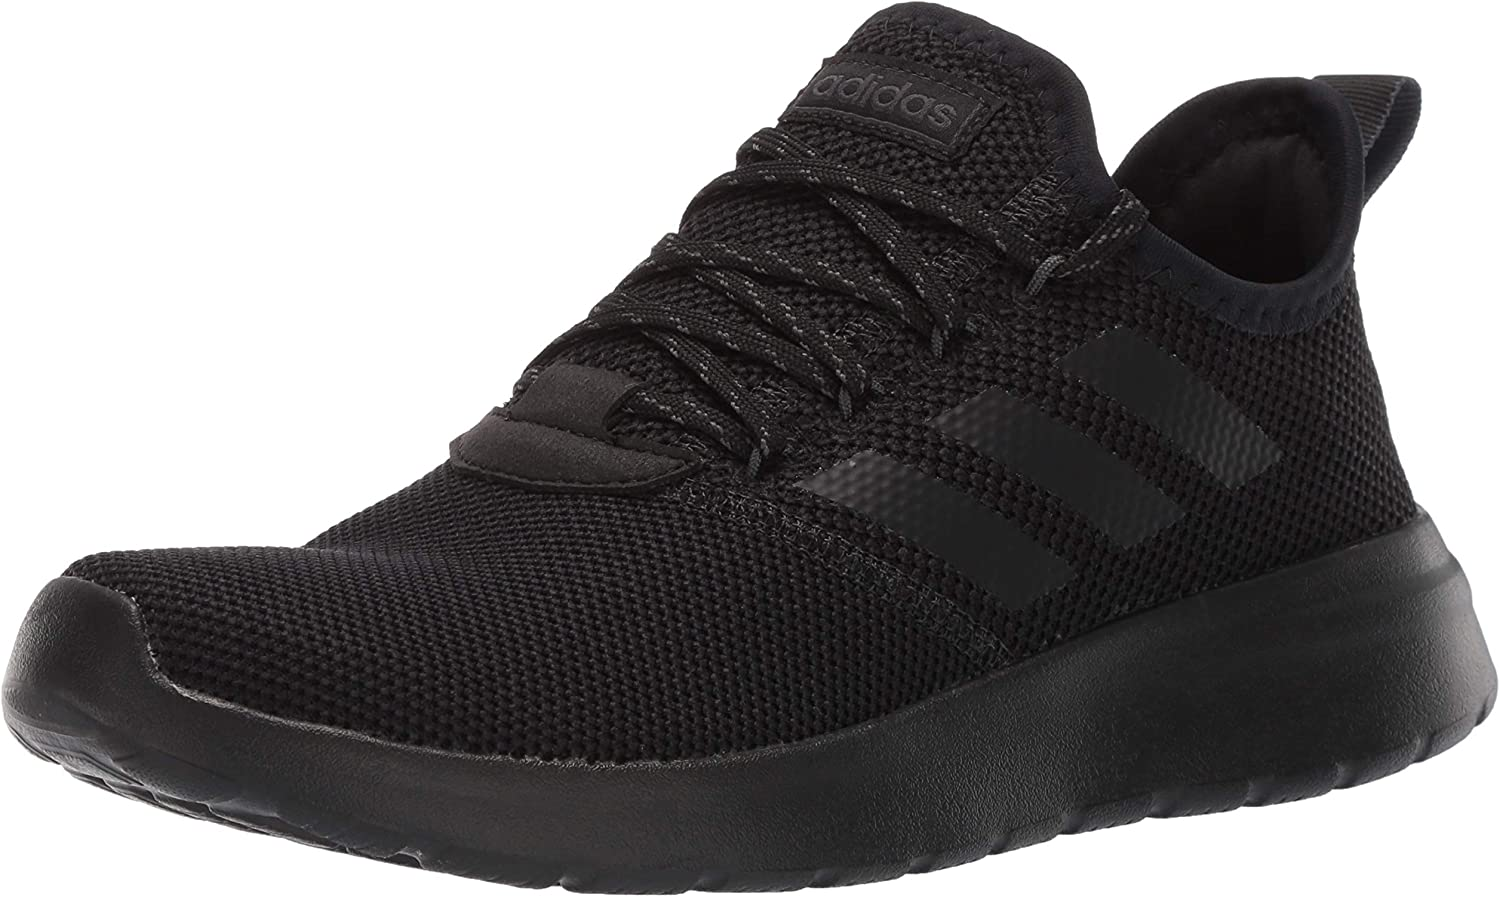 Adidas Men's Lite Racer Reborn Athletic shoes, Core Black Core Black Grey, 8.5 Regular US